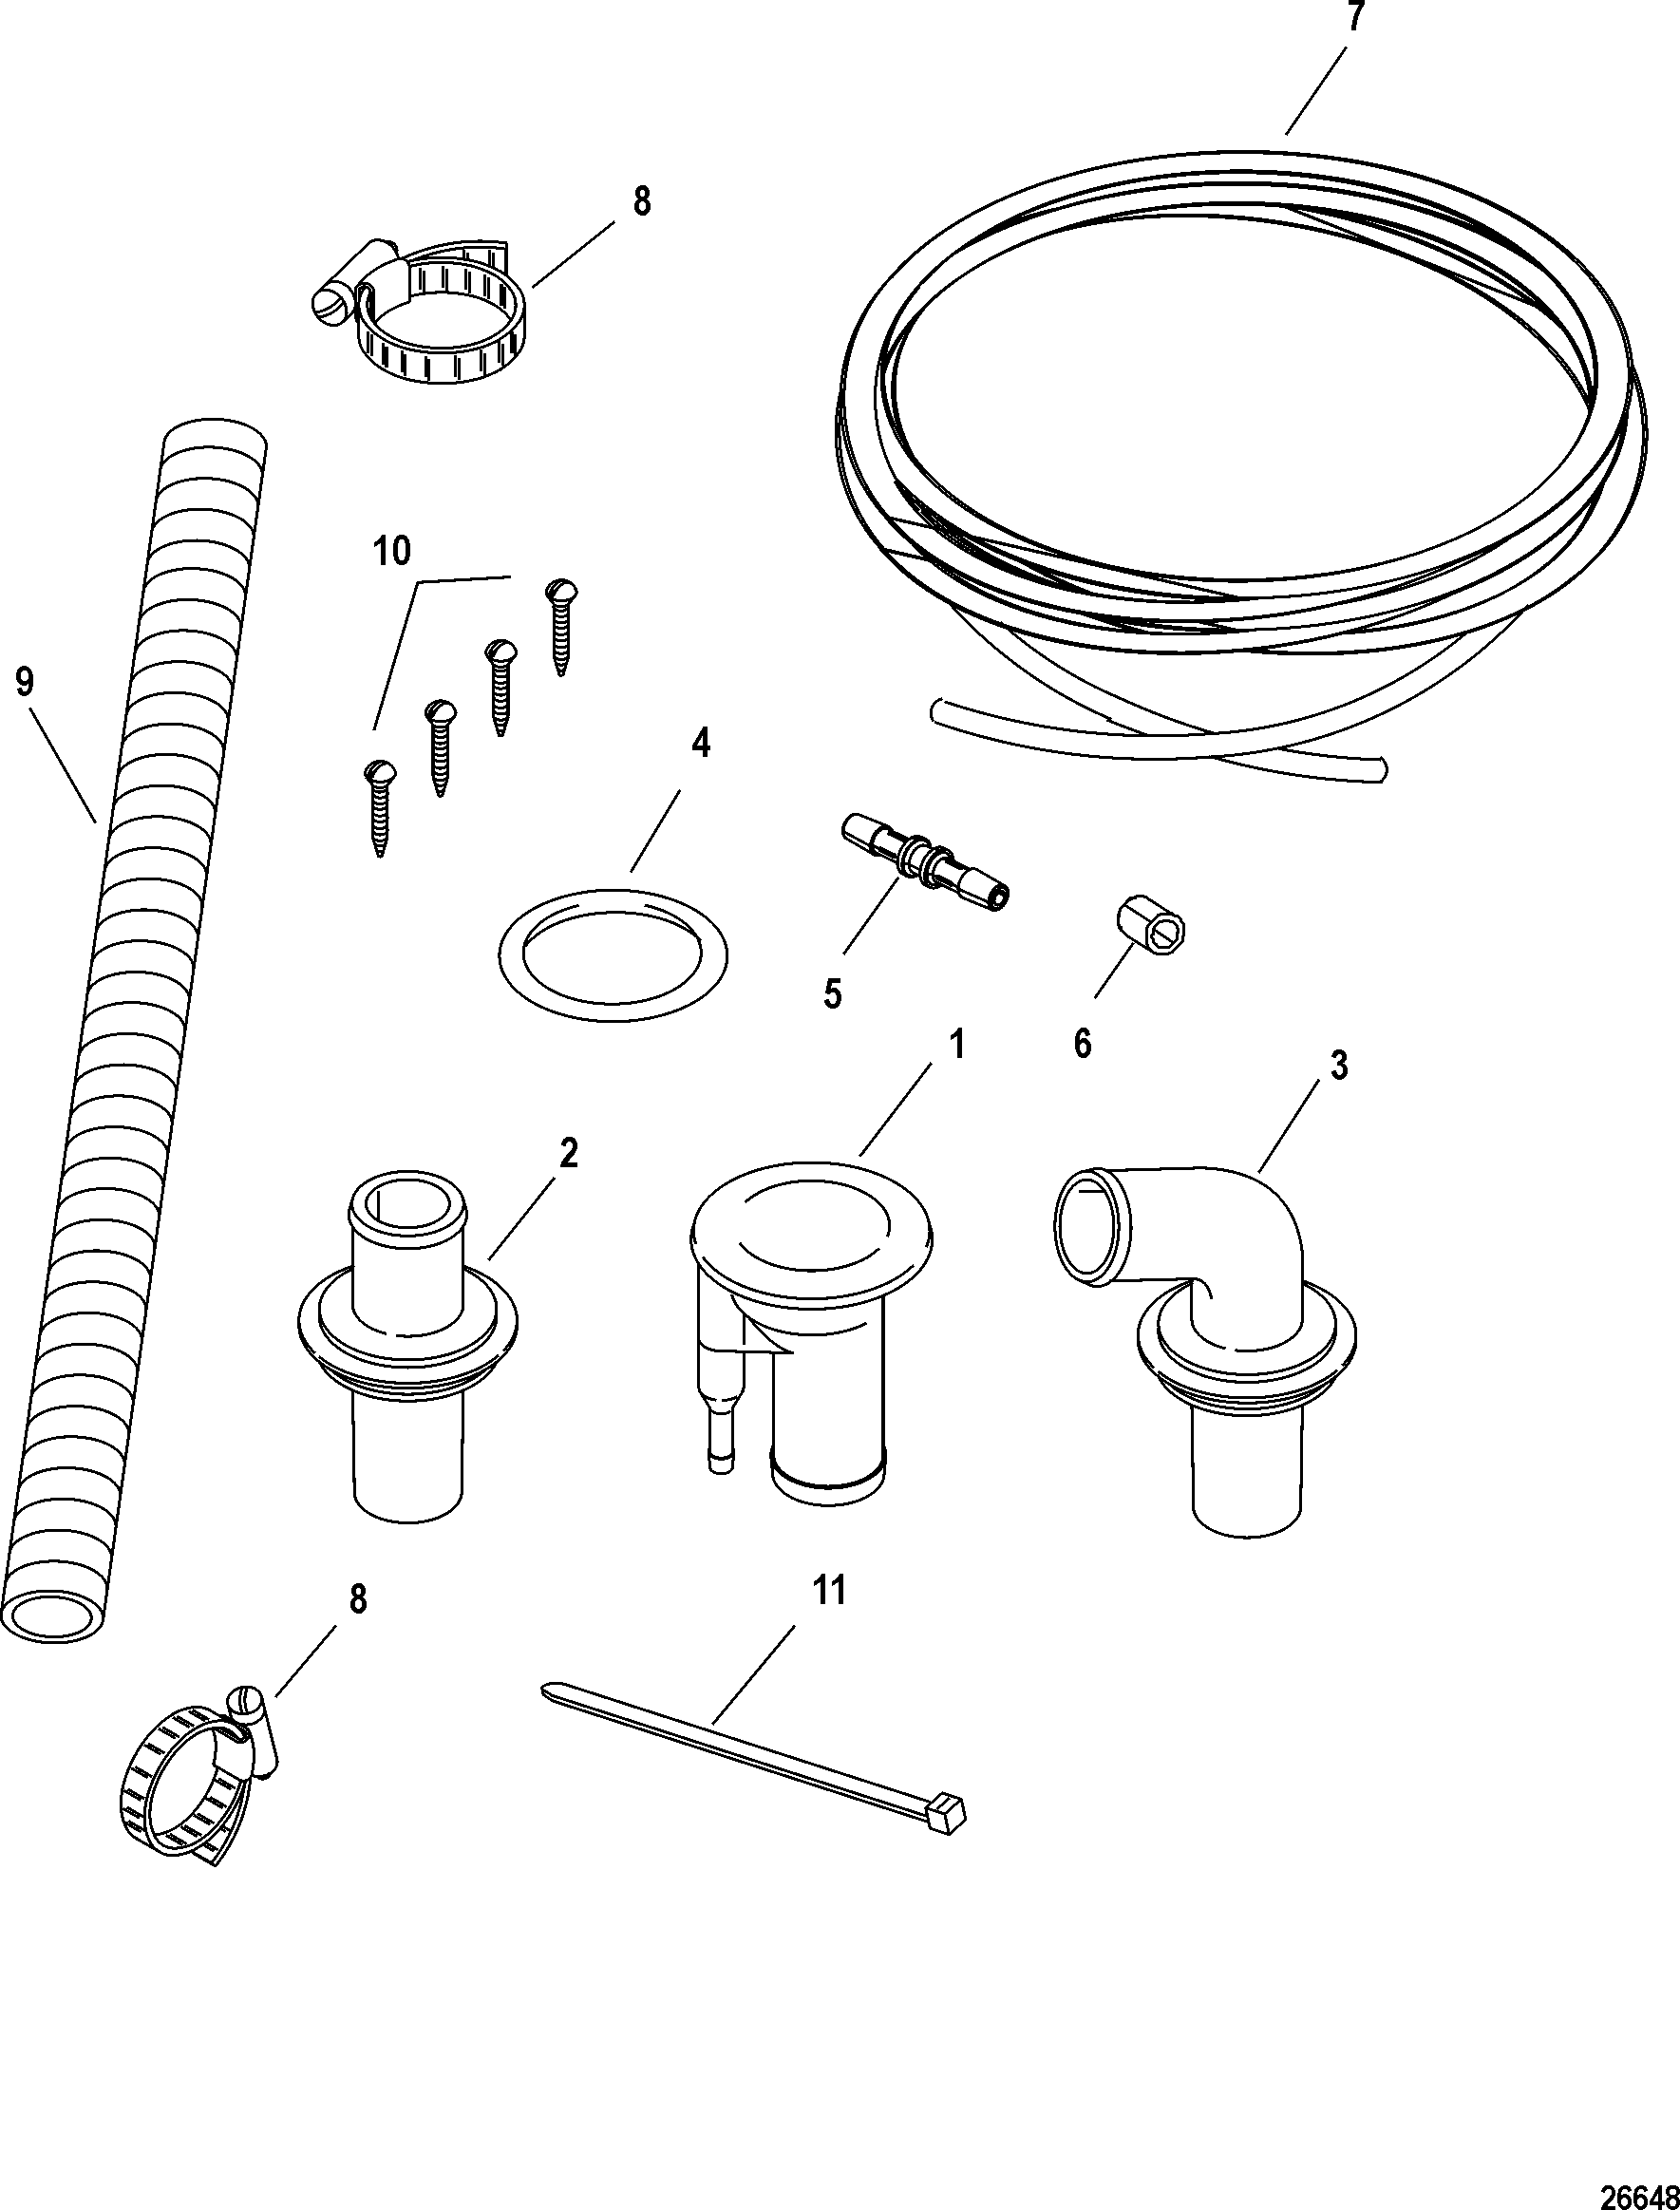 Deck Oil Fill Kit A09 10 11 13 For Fuel Oil Tanks